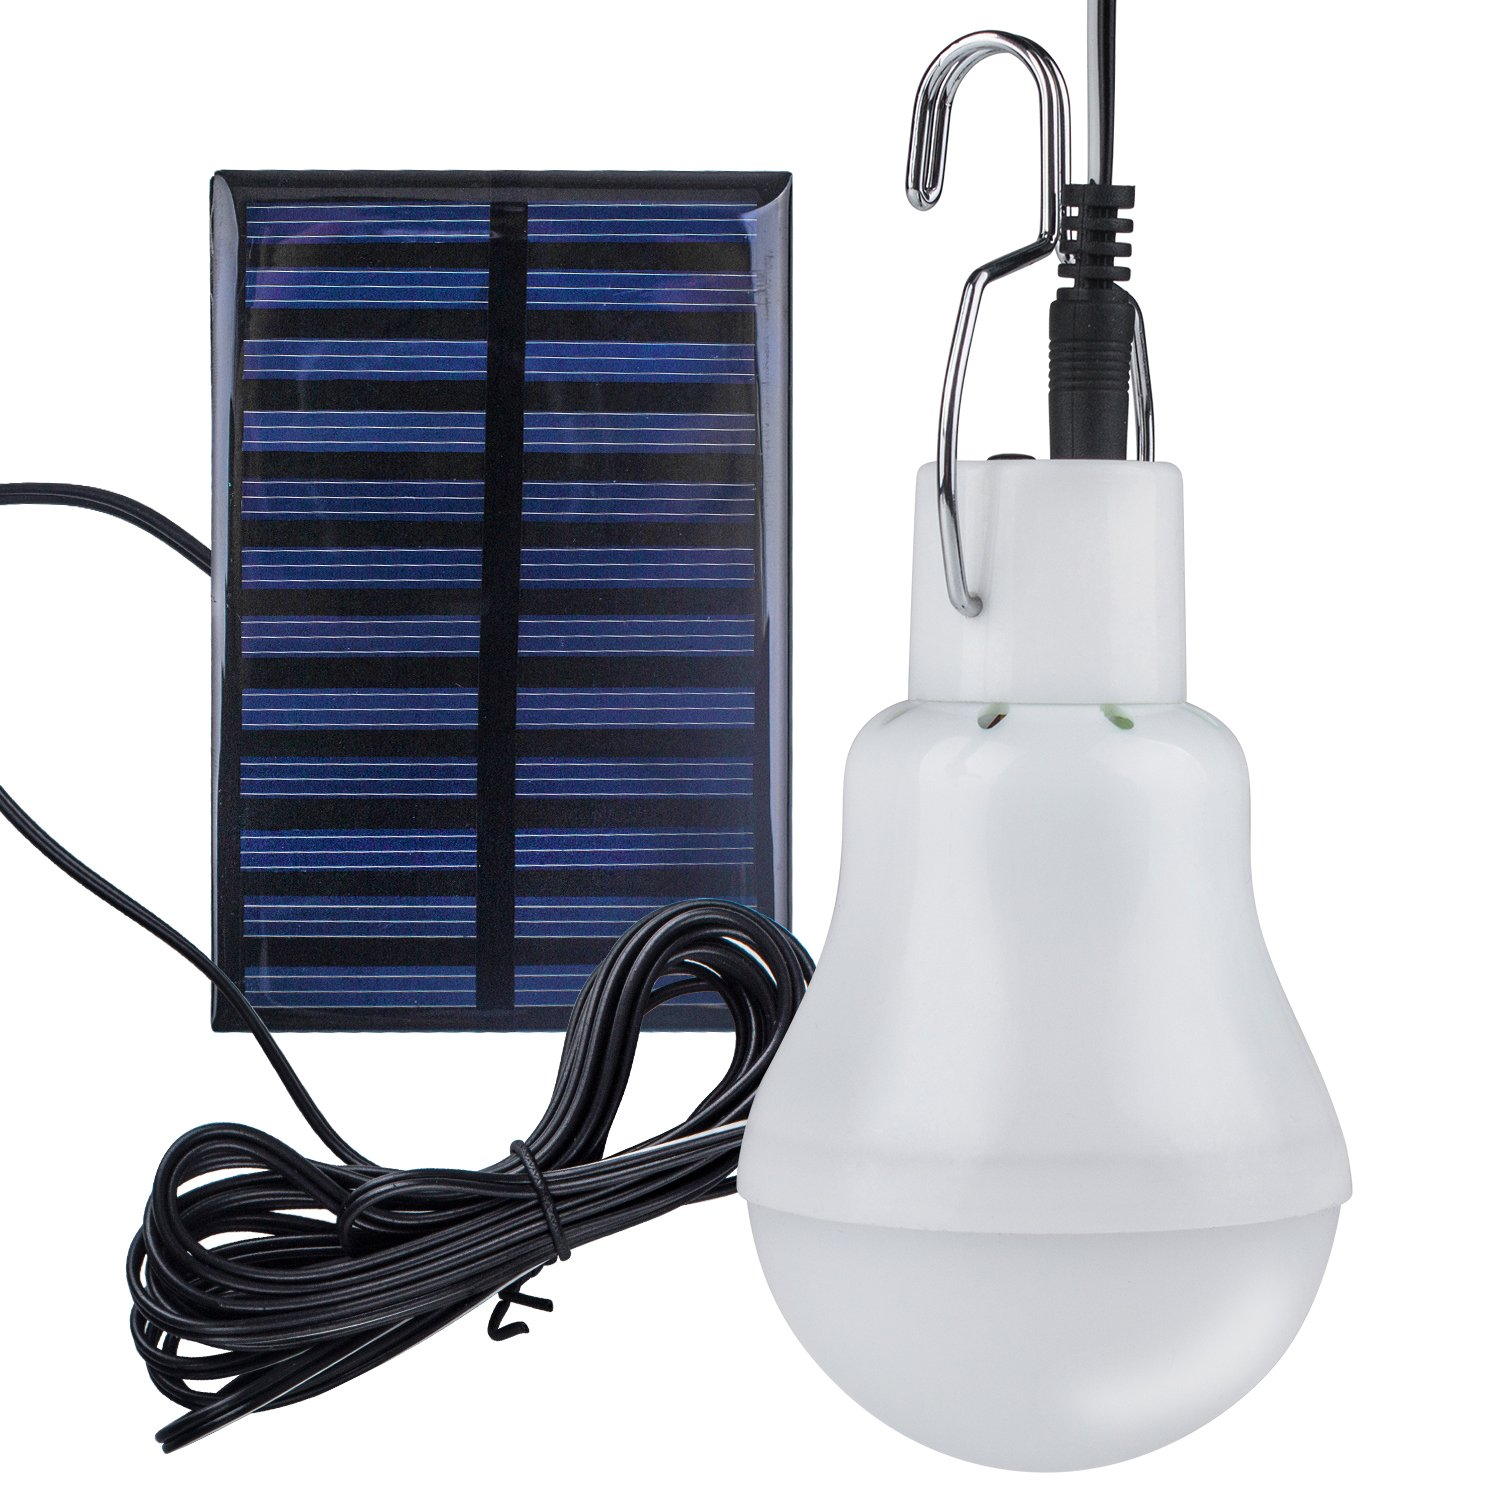 Solar Light Bulb, Beinhome Solar Power LED Light Bulb 3W Rechargeable Battery, 110 LM, 118in Wire with Solar Panel for Camping Outdoor Fishing Garden Patio